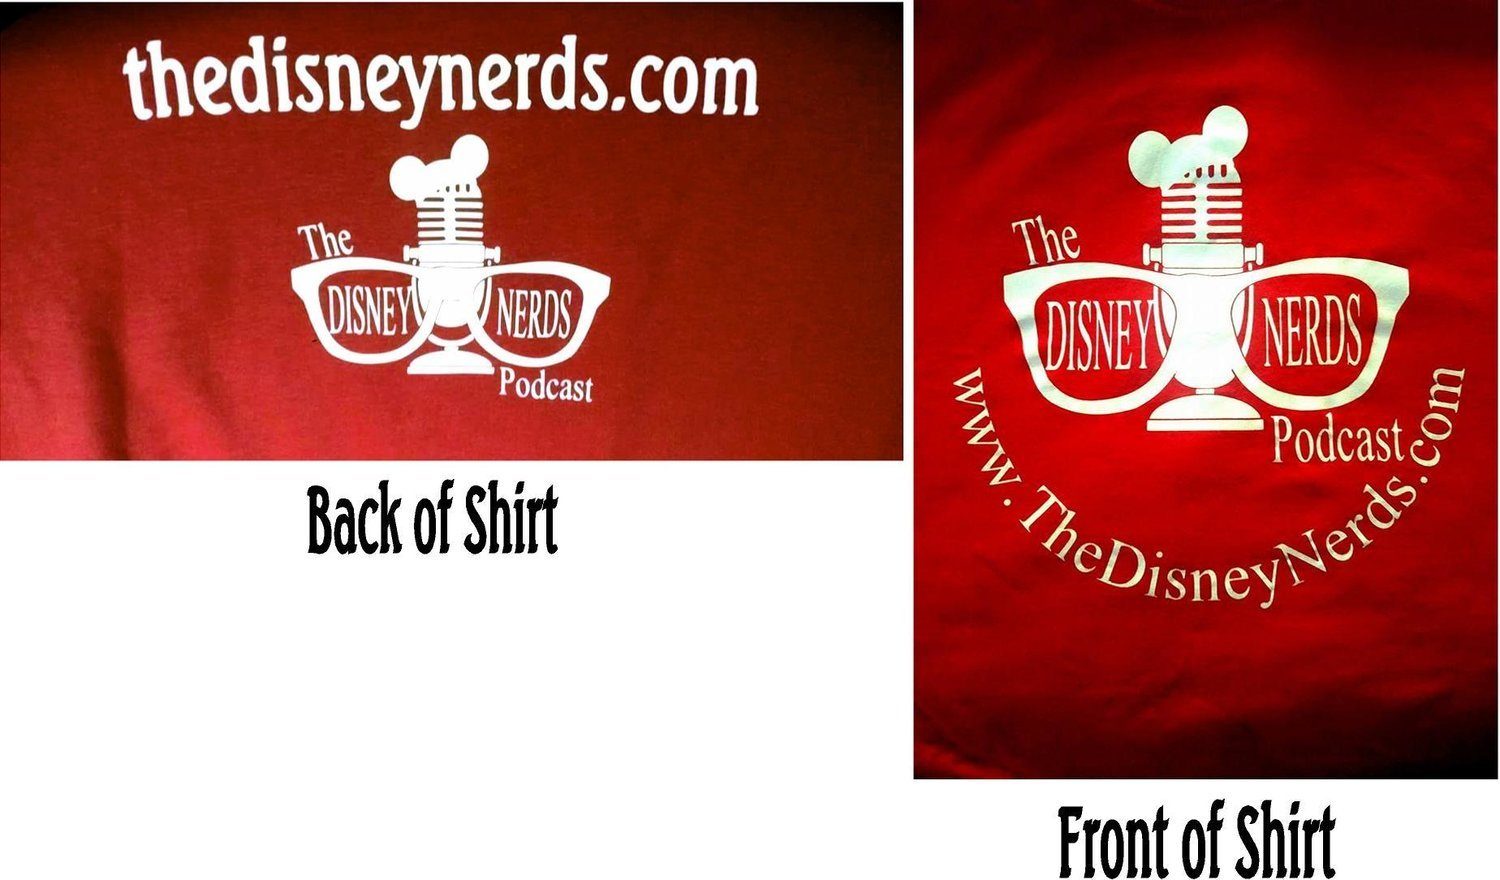 Disney Nerds Podcast T-shirts available in Youth, Women's and Men's Sizes